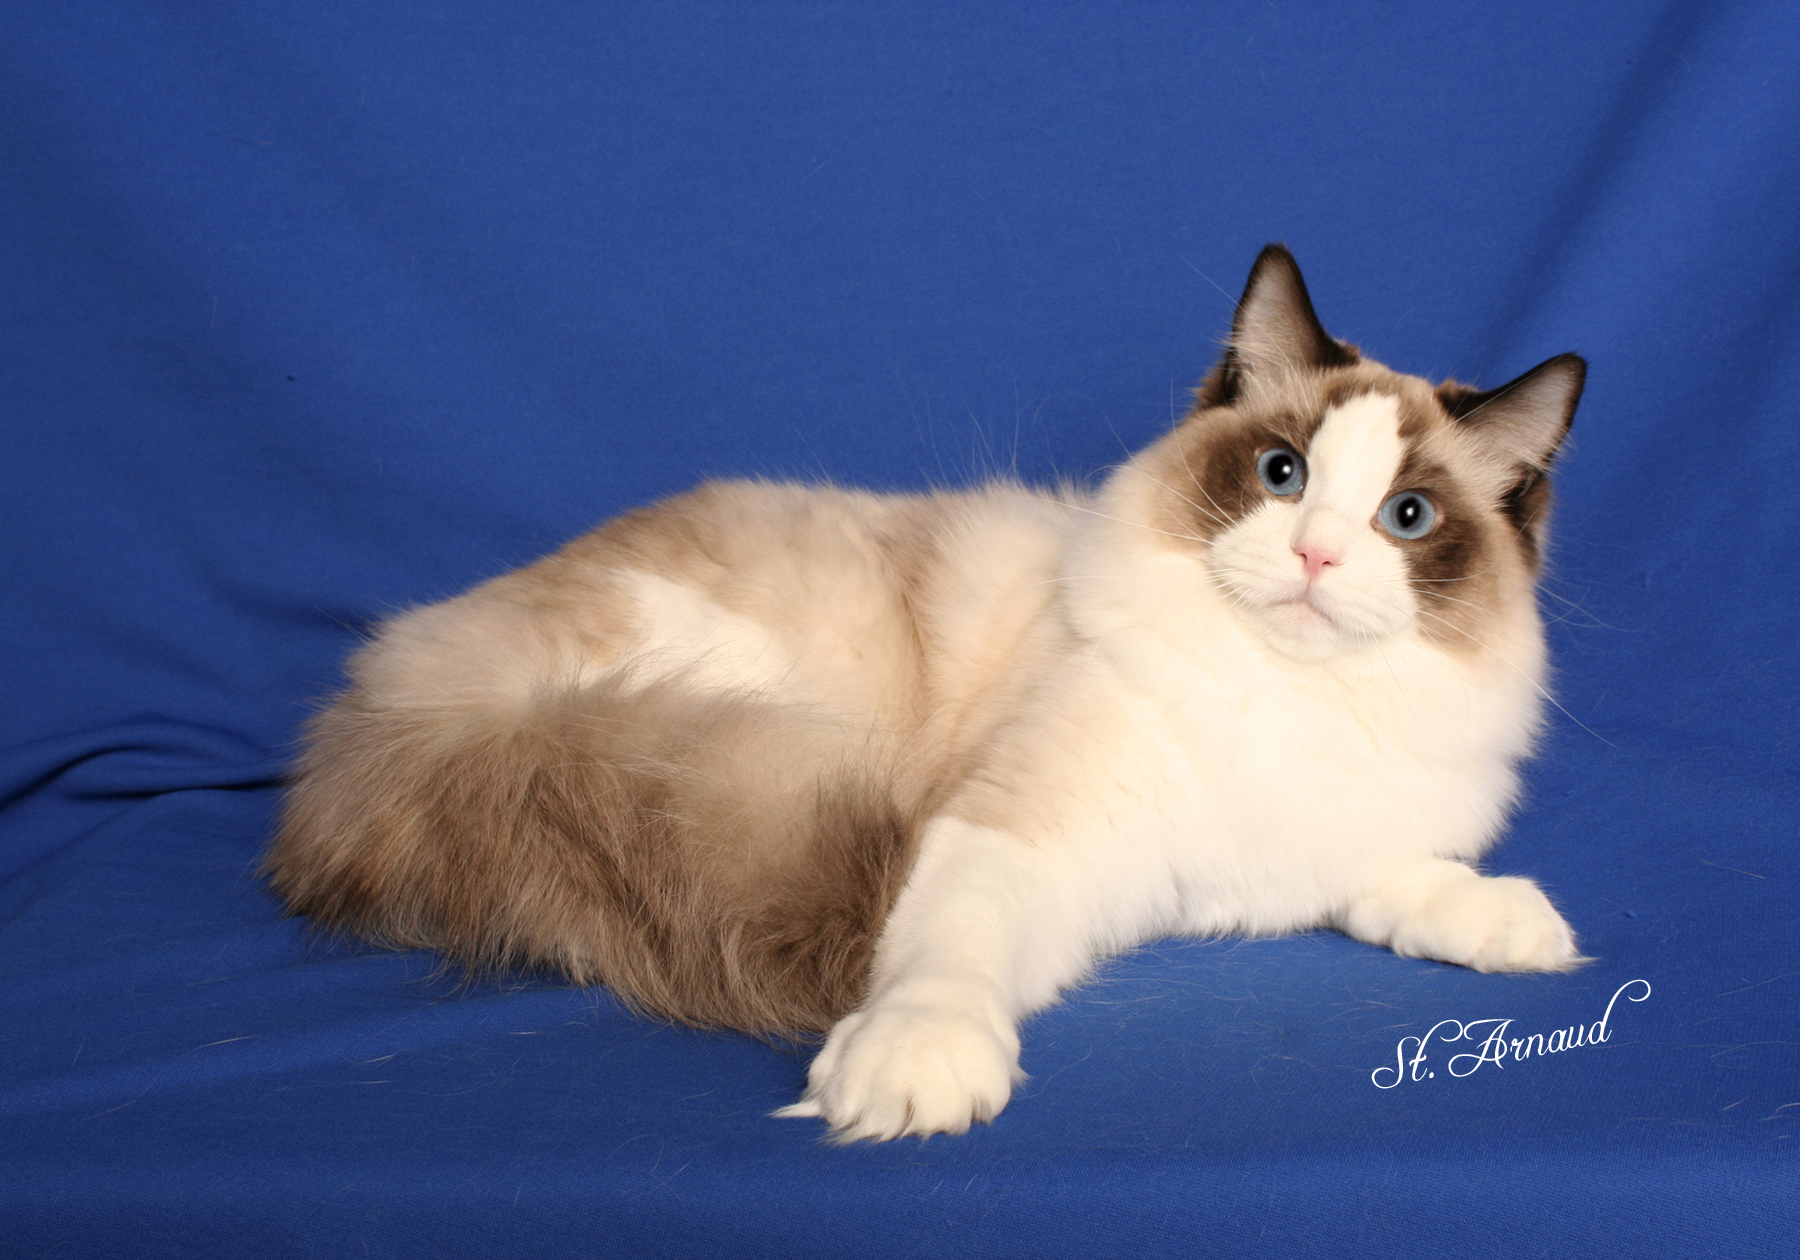 bordeaux ragdoll cats danny has gone to live sunhee in korea to make beautiful korean ragdolls in 2012 danny was shown in korea at a tica show and earned the title of tica